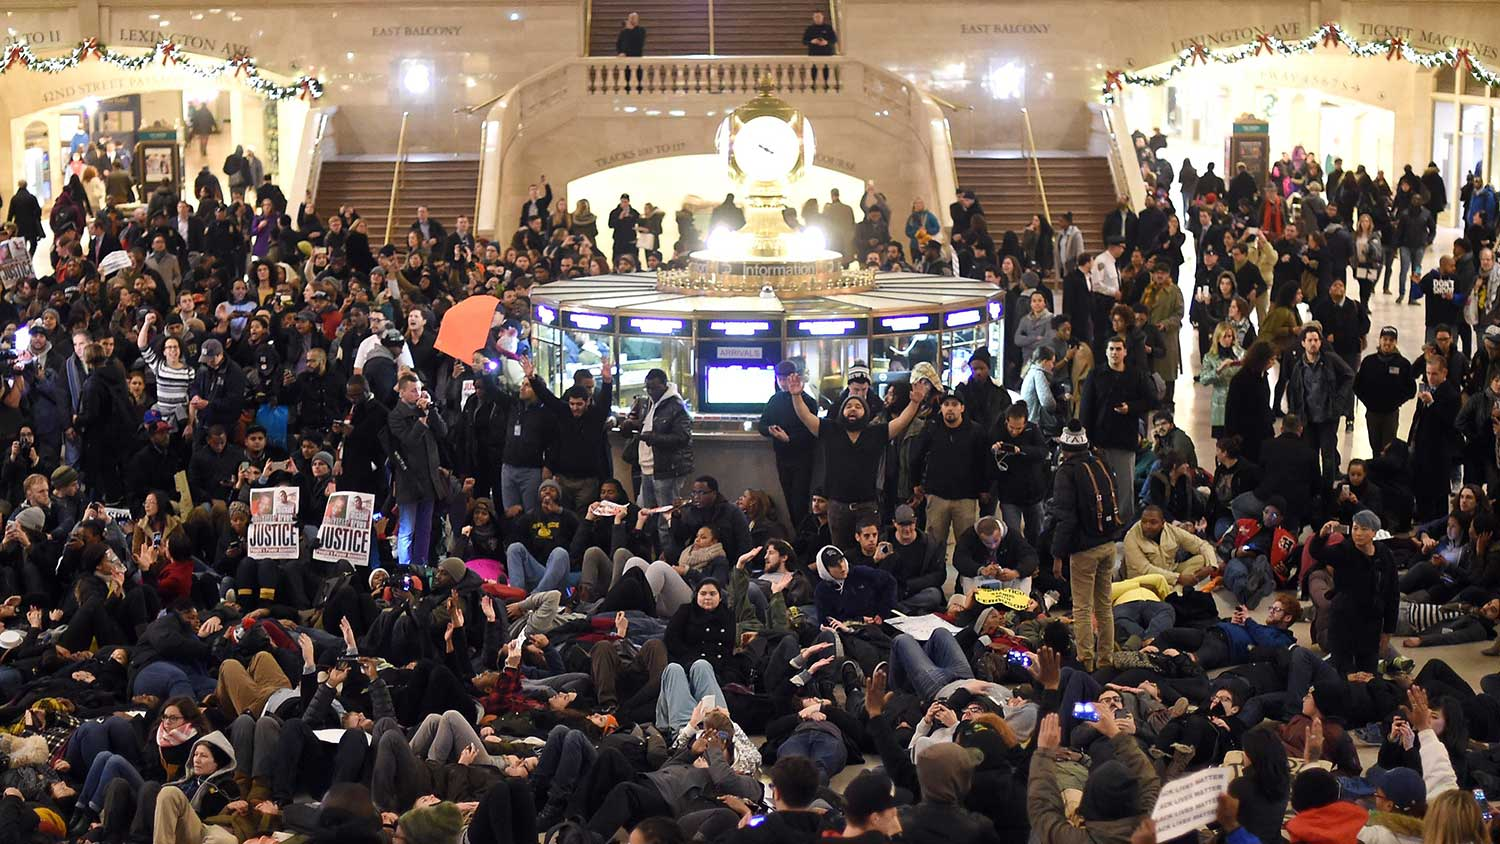 Protestors lay down in New York's Grand Central Station during a protest against the grand jury's decision on Dec. 3, 2014.